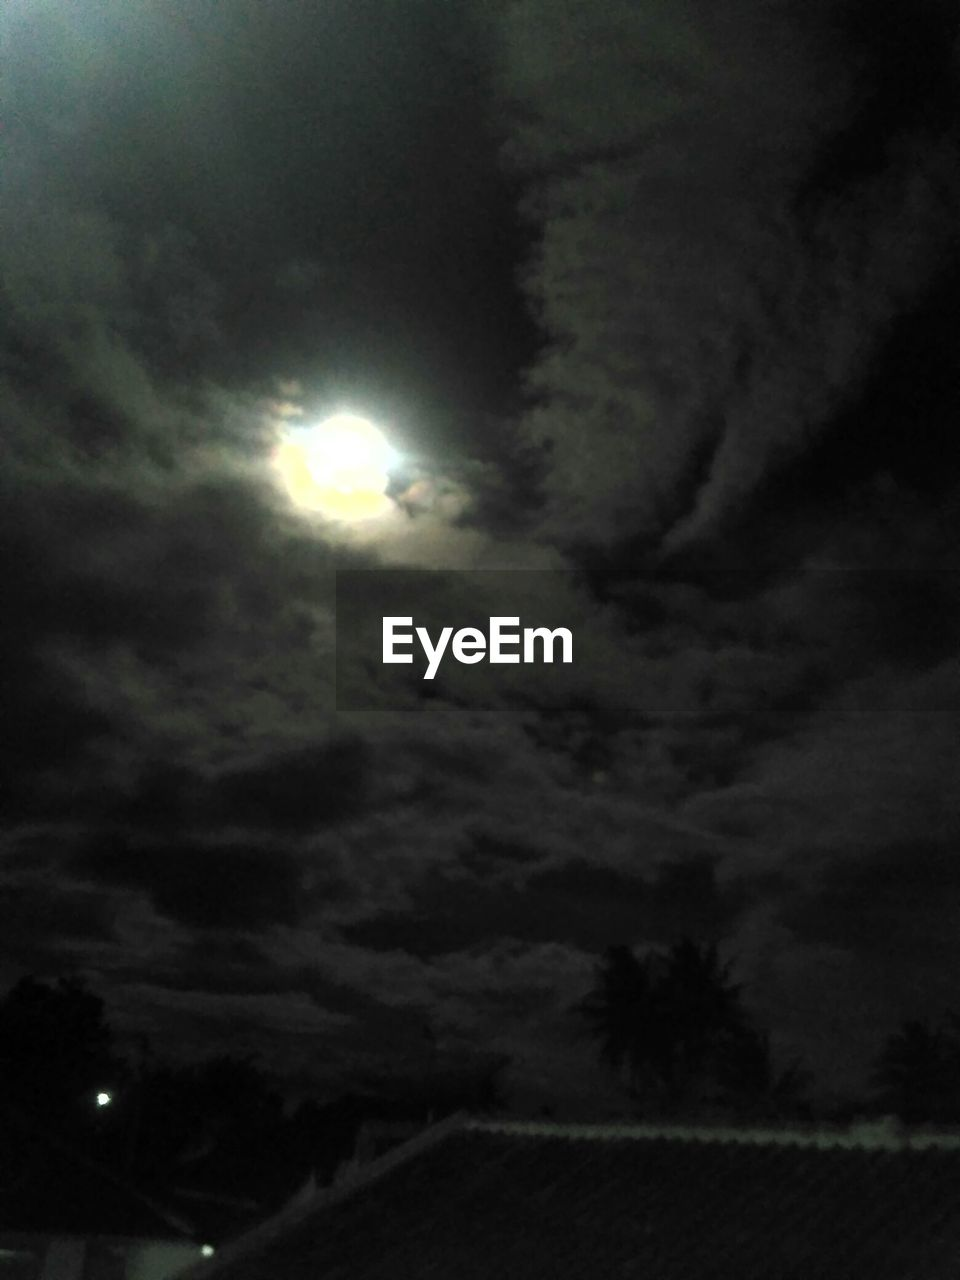 cloud - sky, sky, night, moon, beauty in nature, tranquility, no people, nature, scenics - nature, moonlight, outdoors, tranquil scene, dark, low angle view, full moon, illuminated, plant, idyllic, tree, ominous